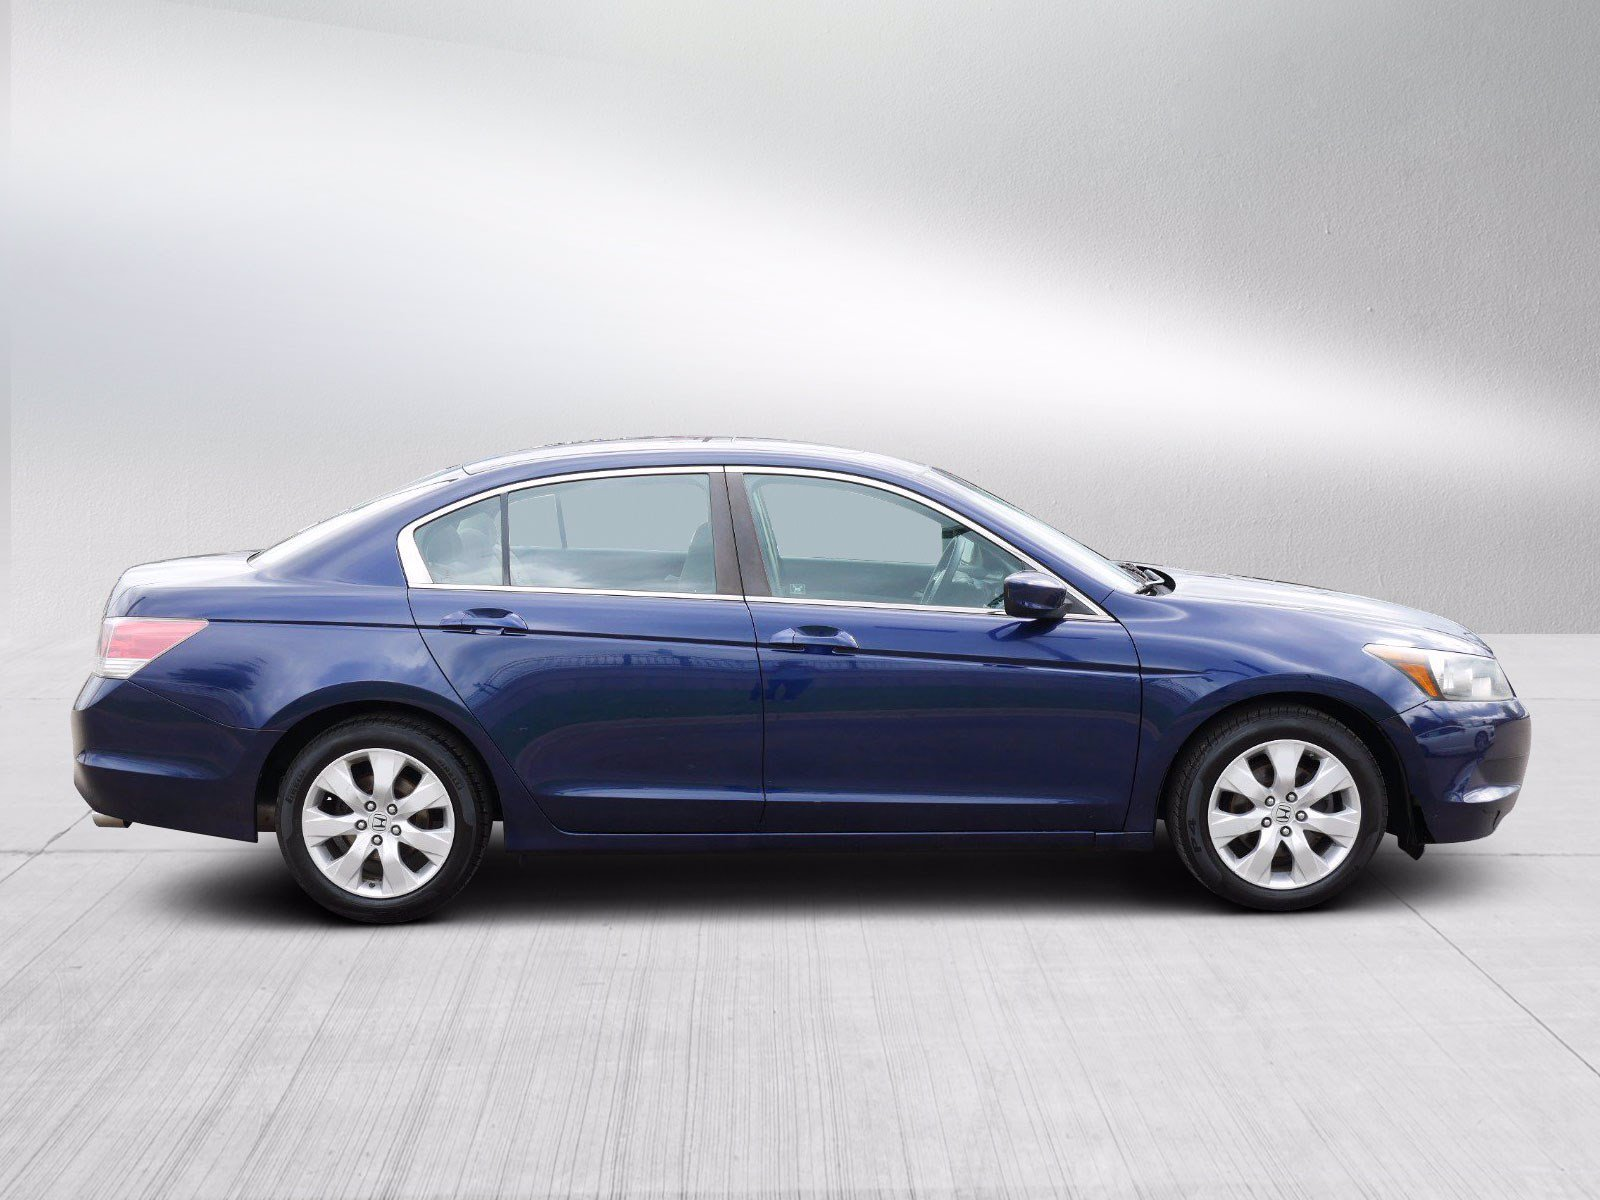 Used 2008 Honda Accord EX with VIN 1HGCP267X8A069570 for sale in Bloomington, Minnesota